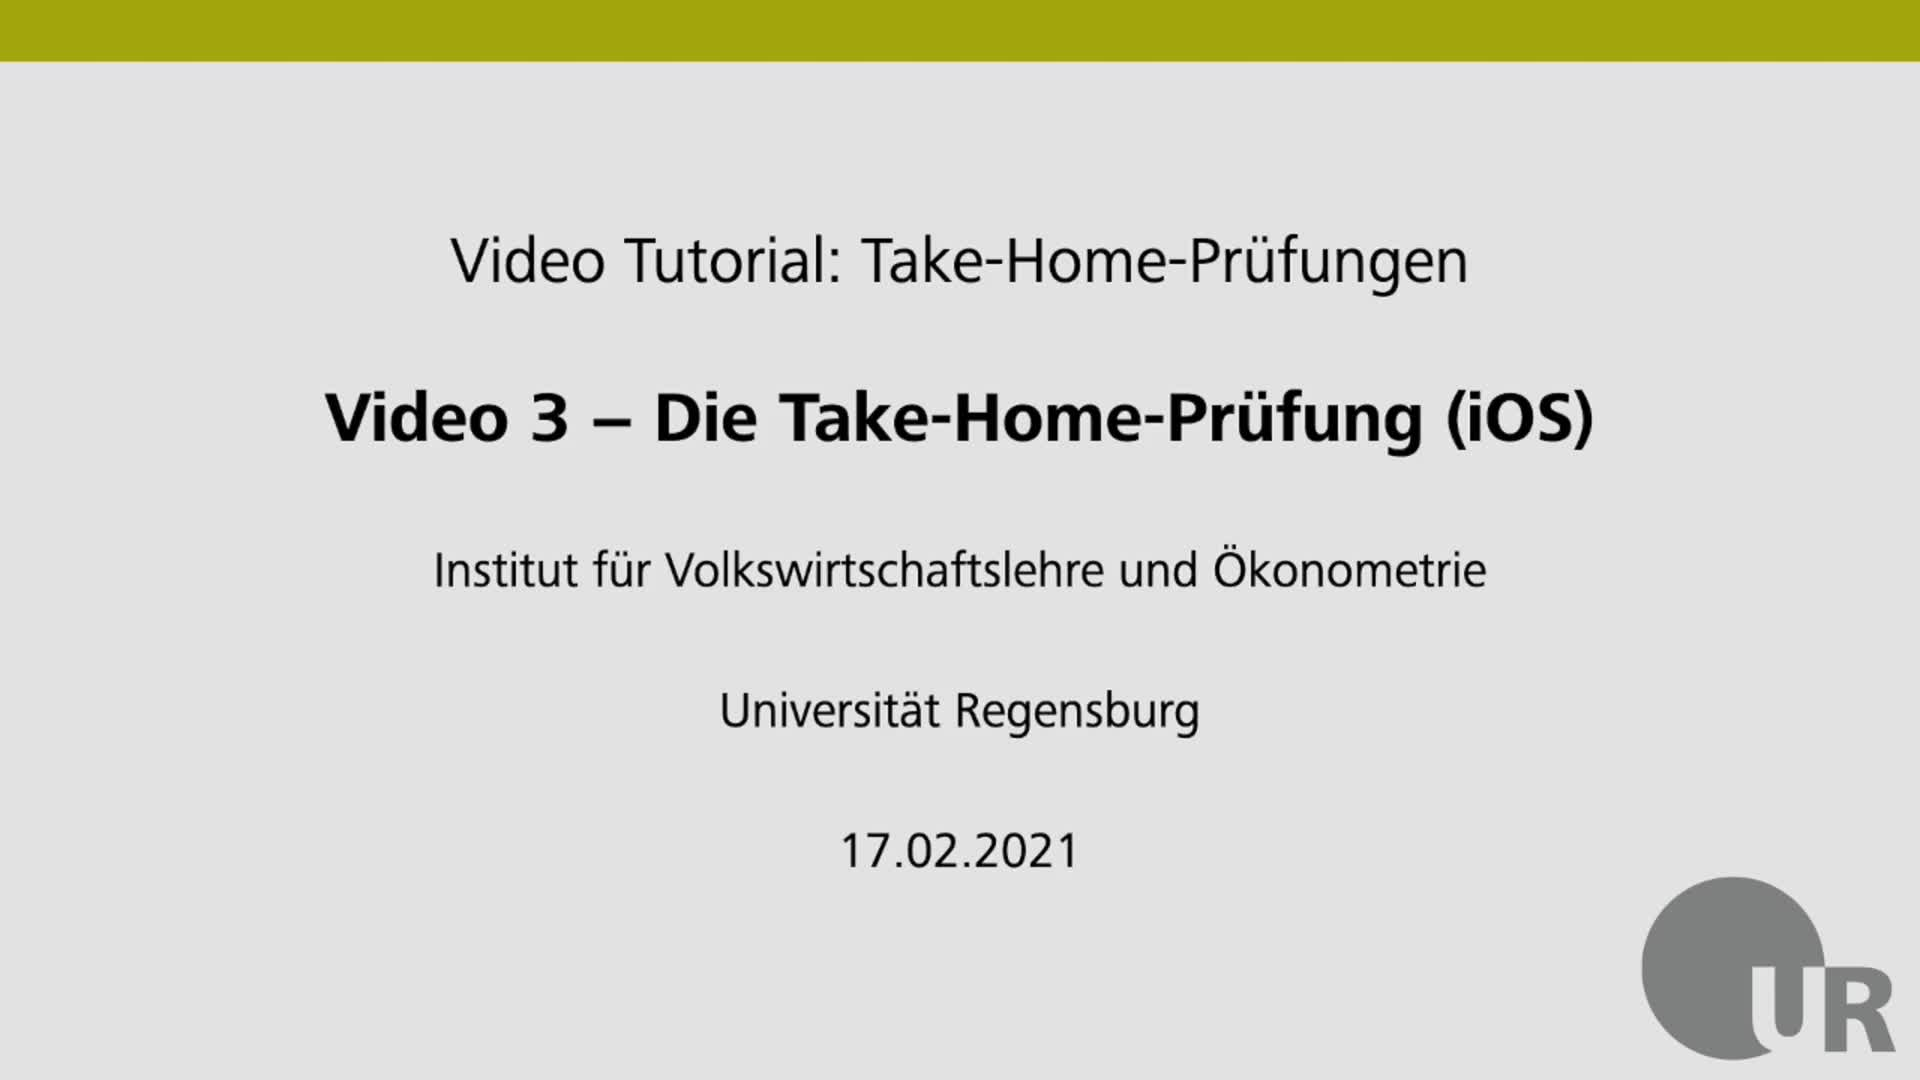 Video 3 - Die Take-Home-Prüfung (iOS)